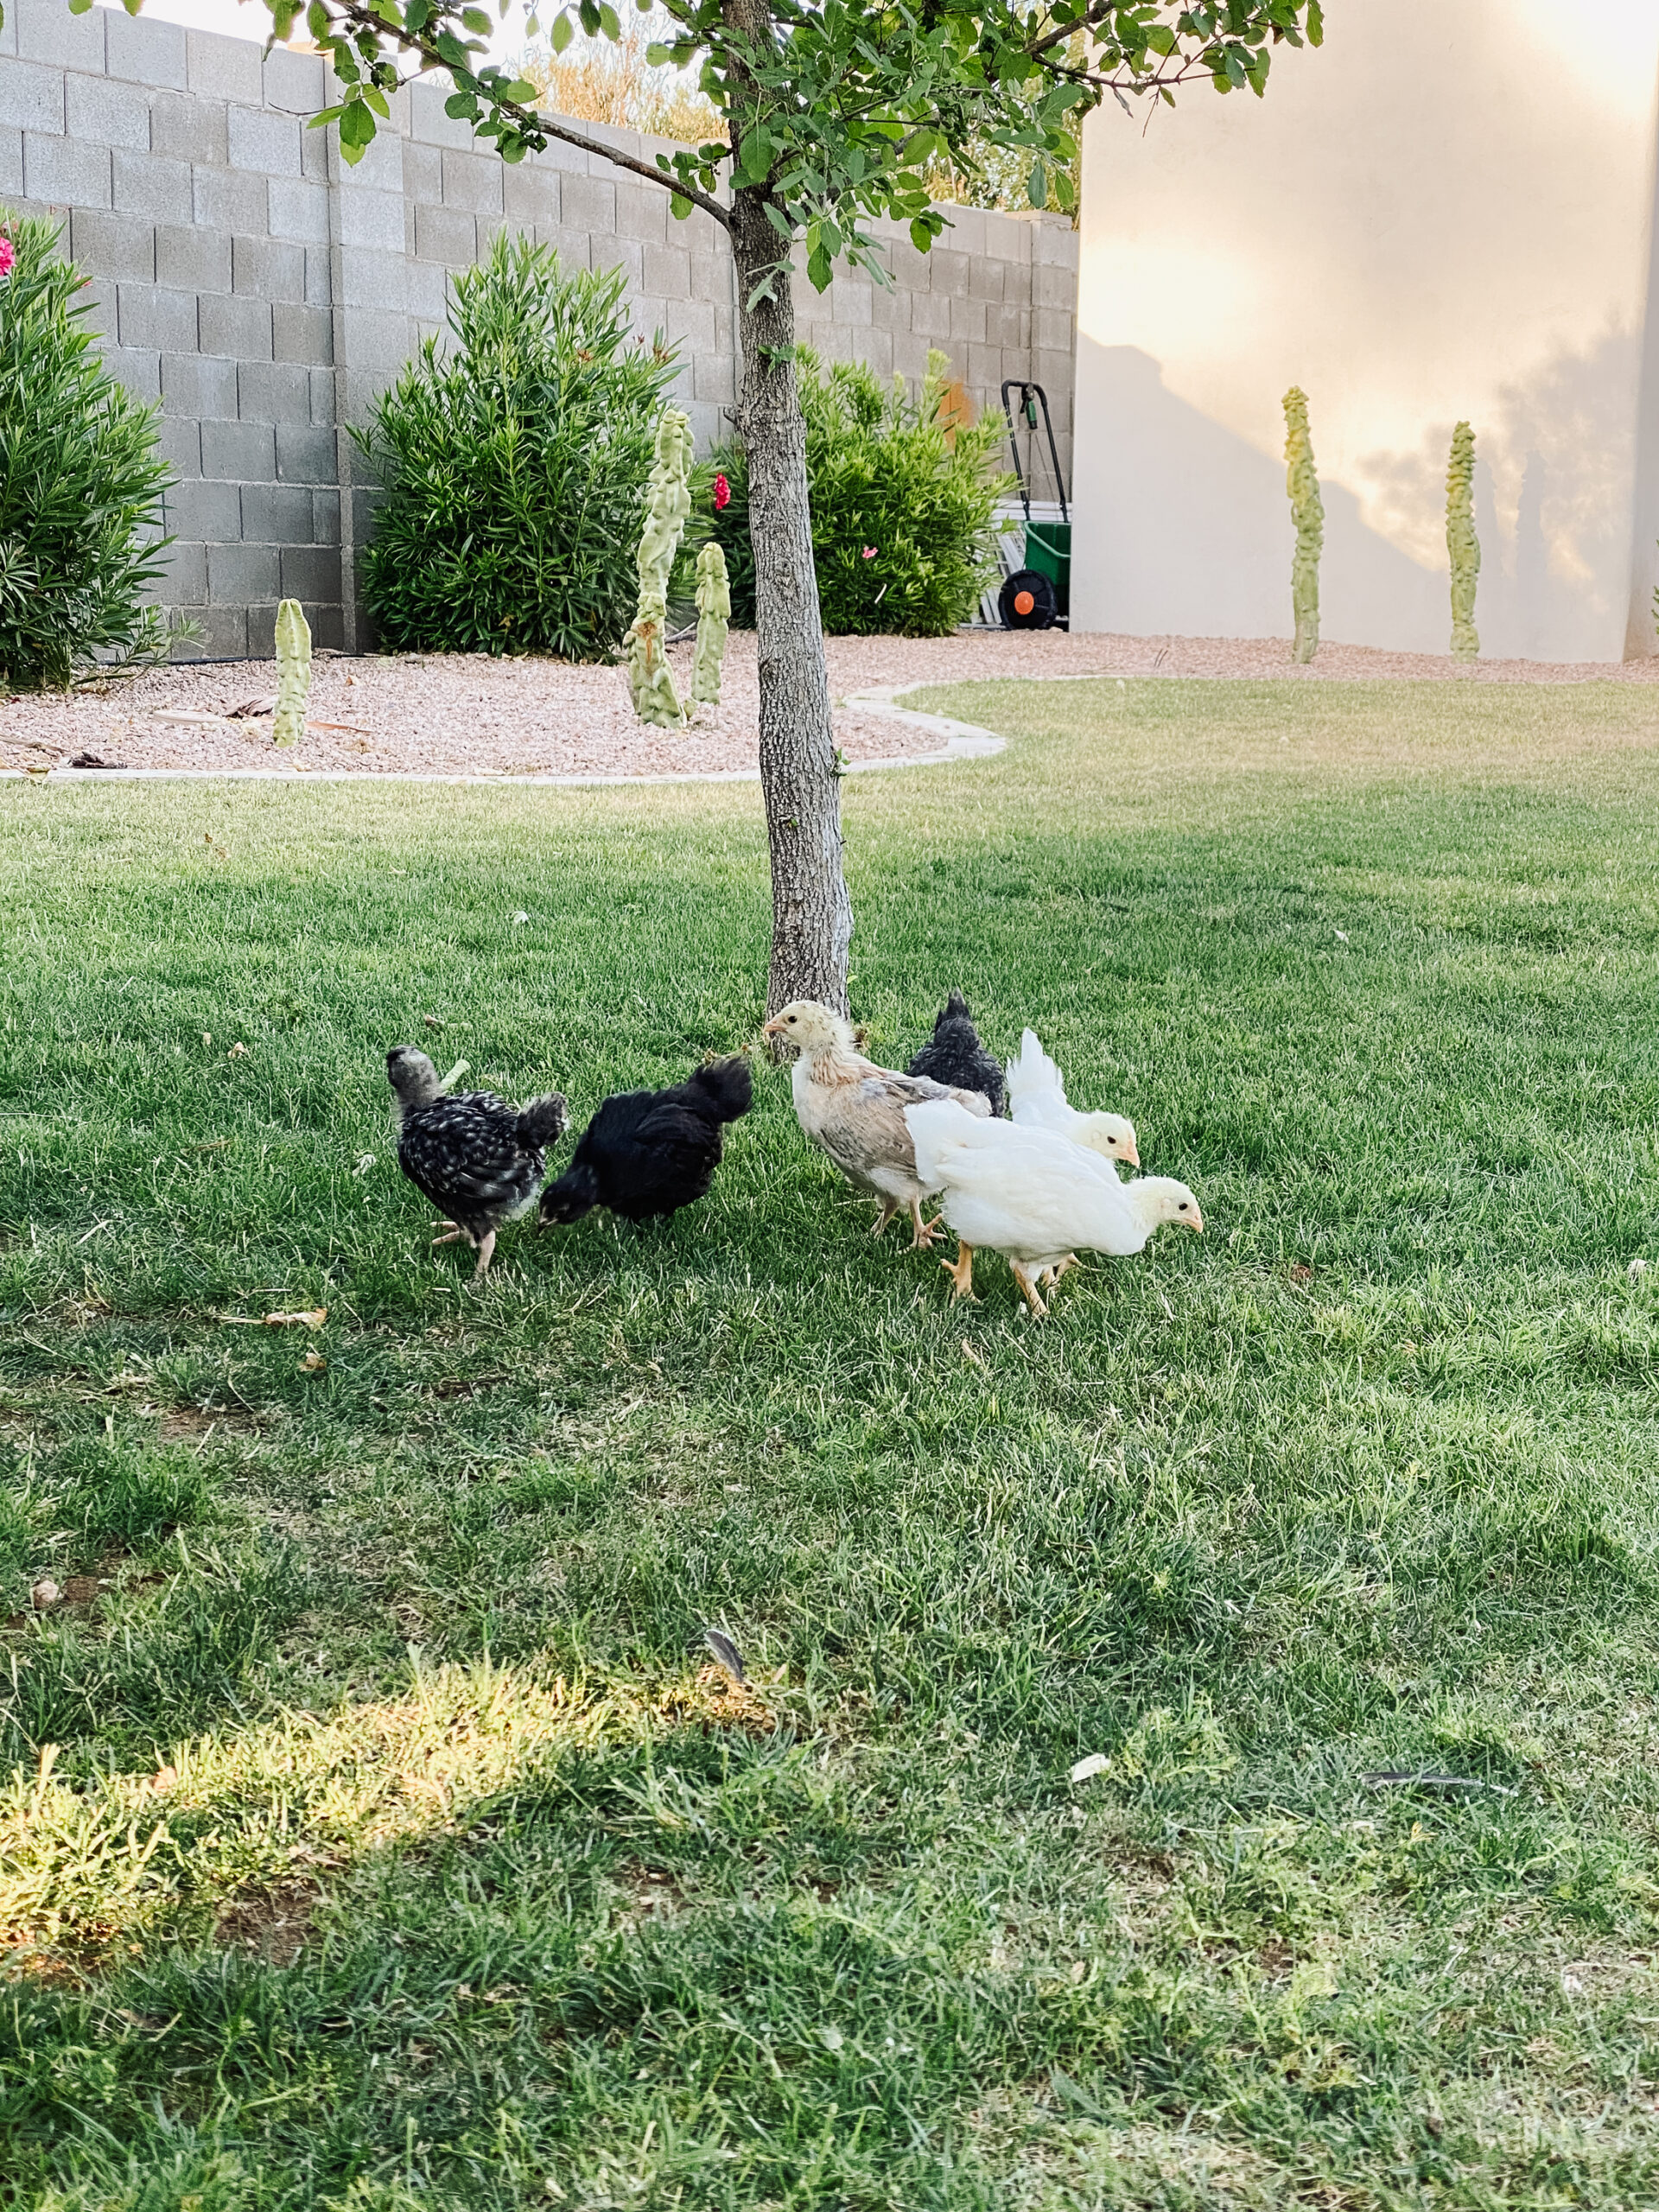 free ranging our baby chicks in the backyard #thelovedesignedlife #backyardchickens #freeranging